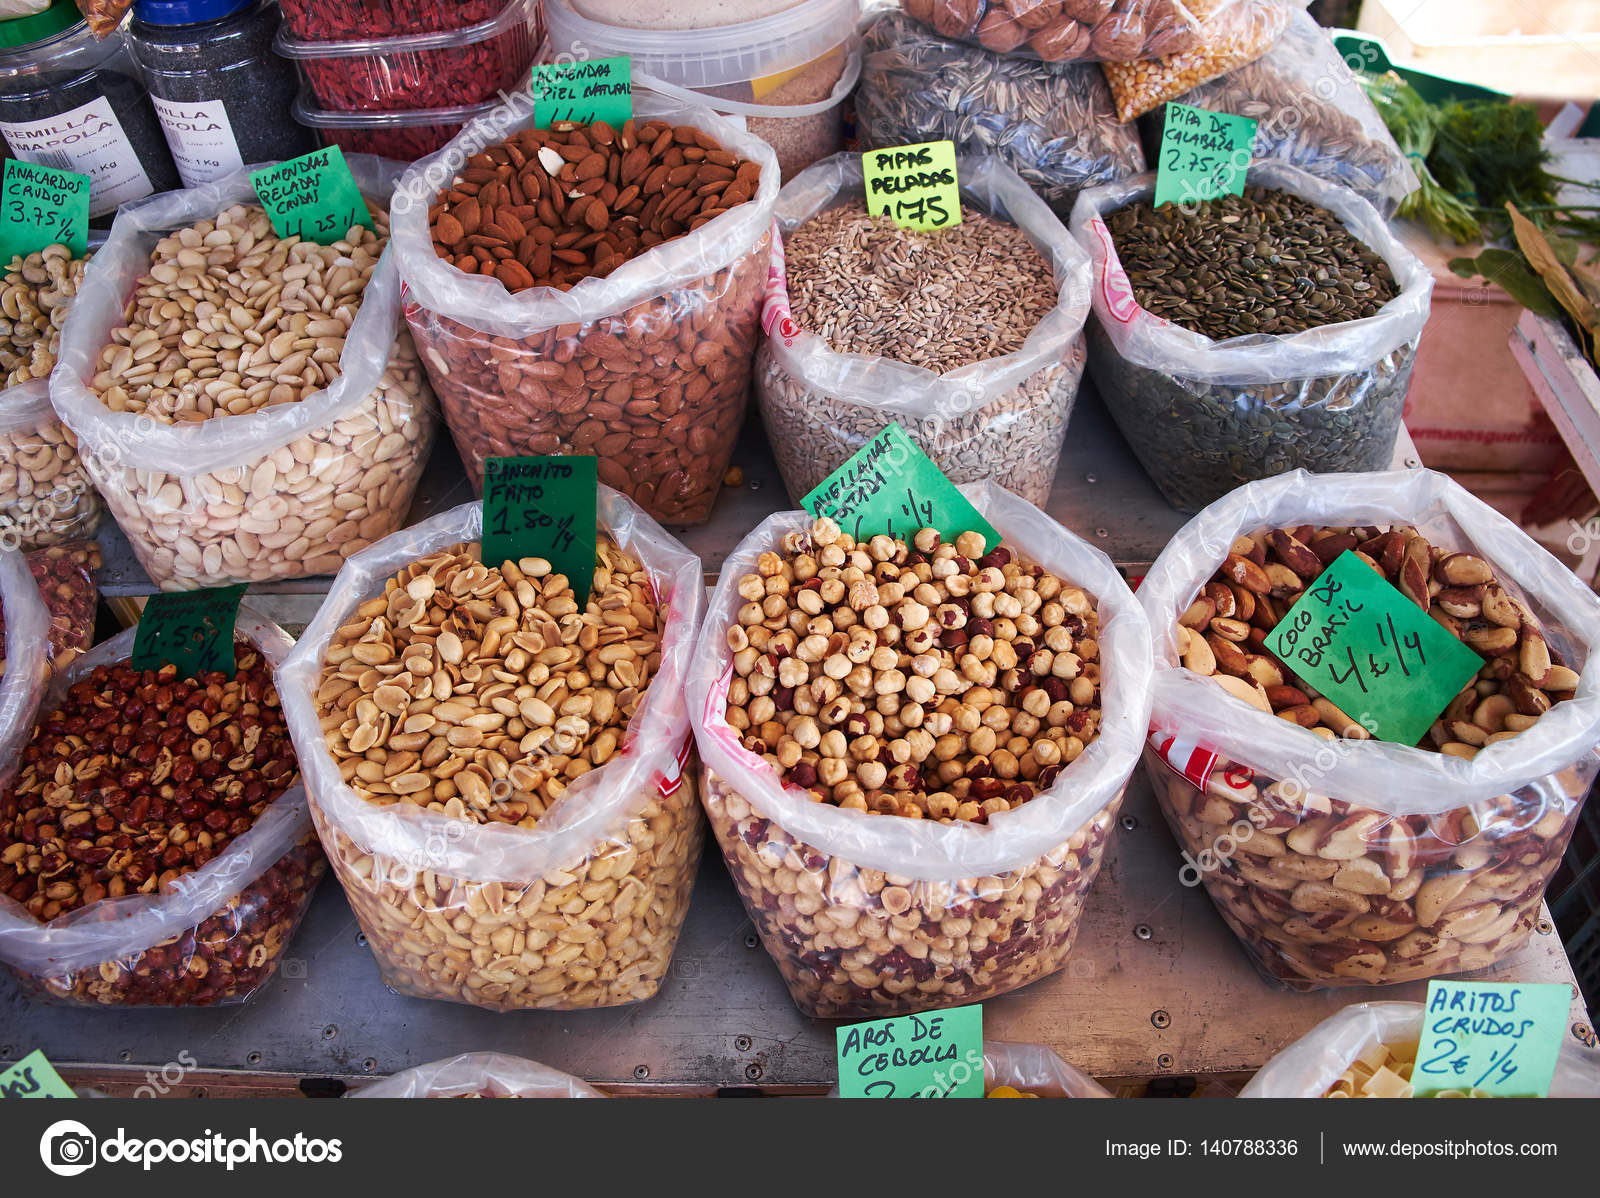 Many bags of various types of nuts for sale at Sunday market